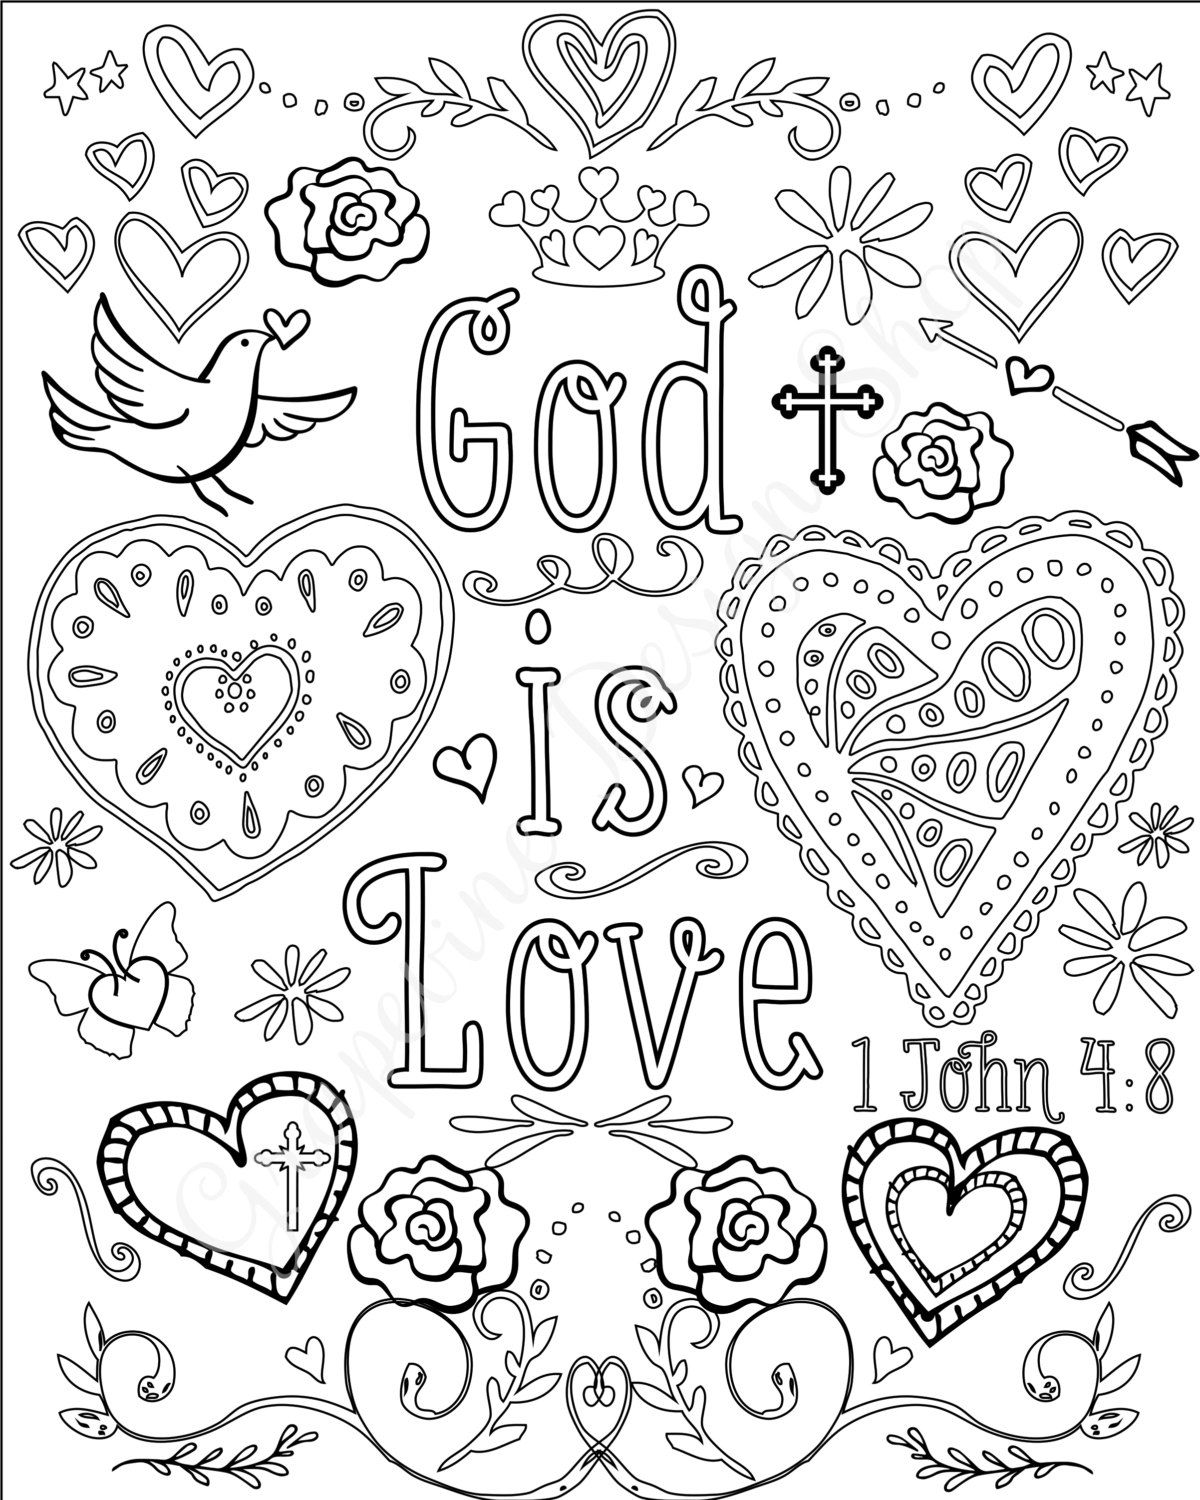 free coloring pages with religious themes | Bible verse coloring pages. Set of 5 Instant download ...